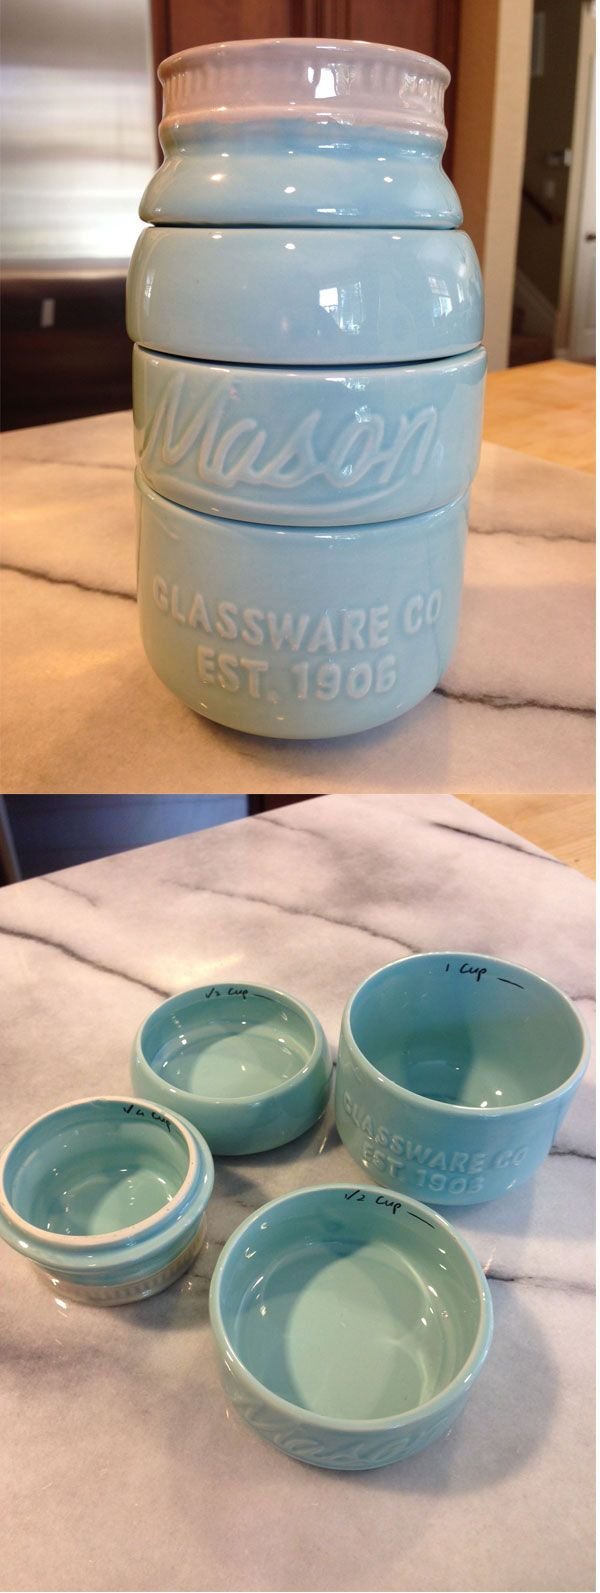 Darling Mason Jar Measuring Cups - only $12.99! http://rstyle.me/n/jngwvnyg6